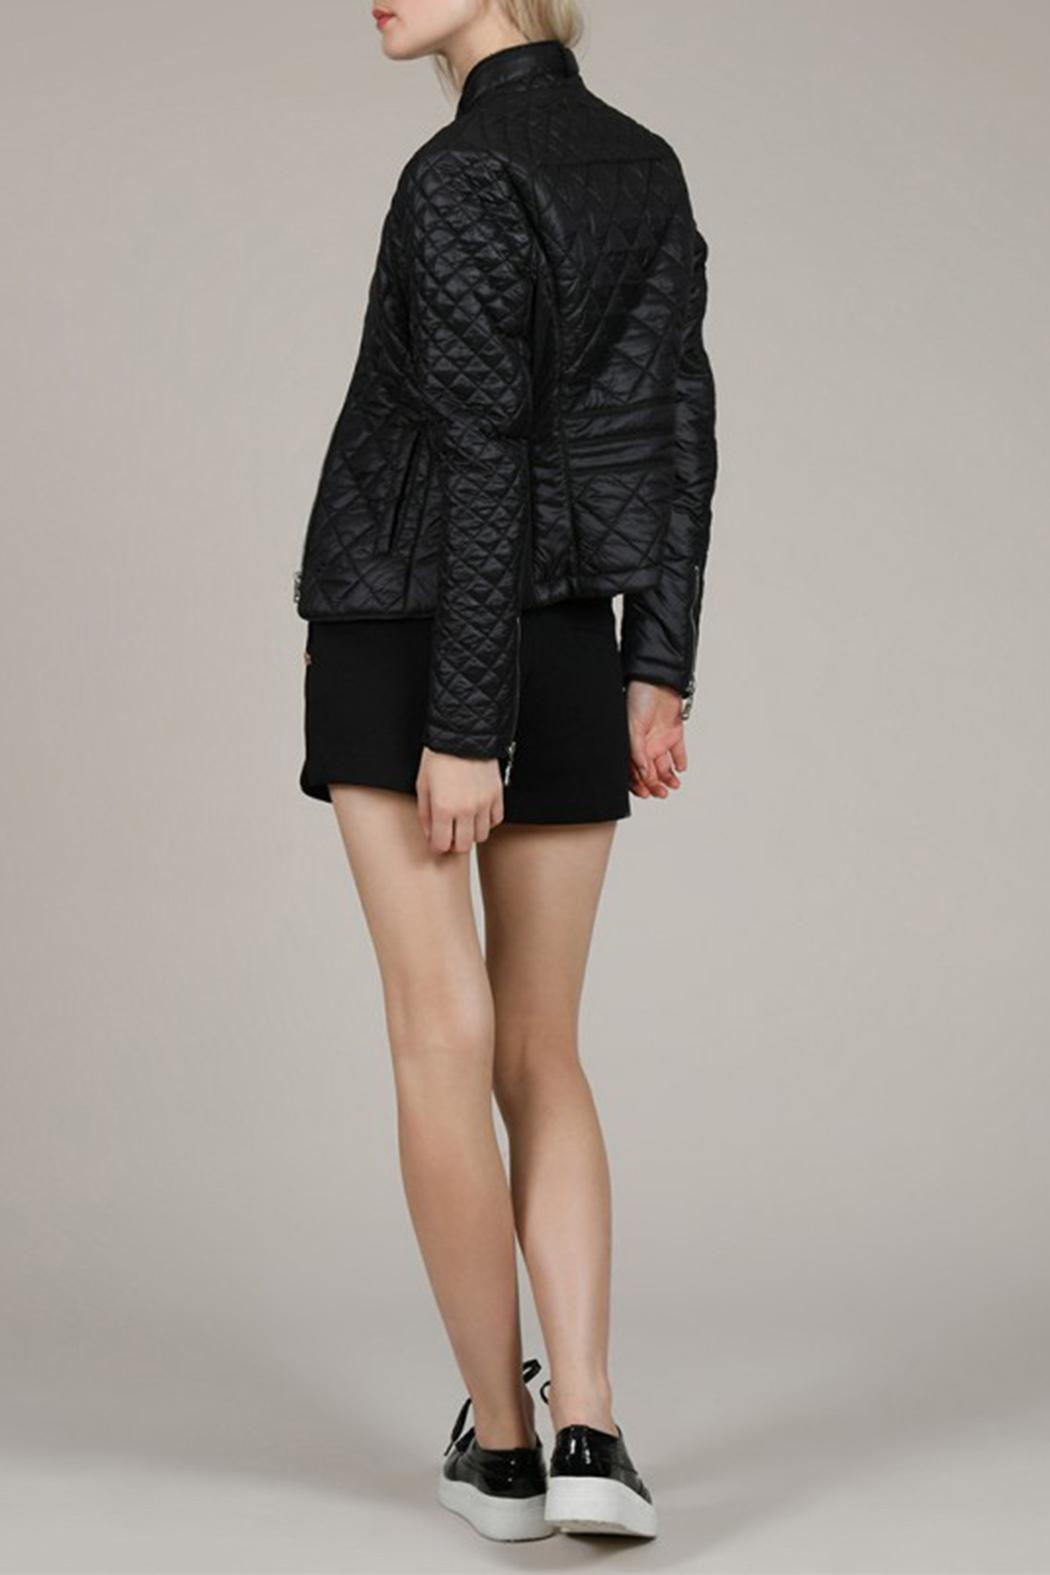 Molly Bracken Diamond Quilted Jacket - Side Cropped Image